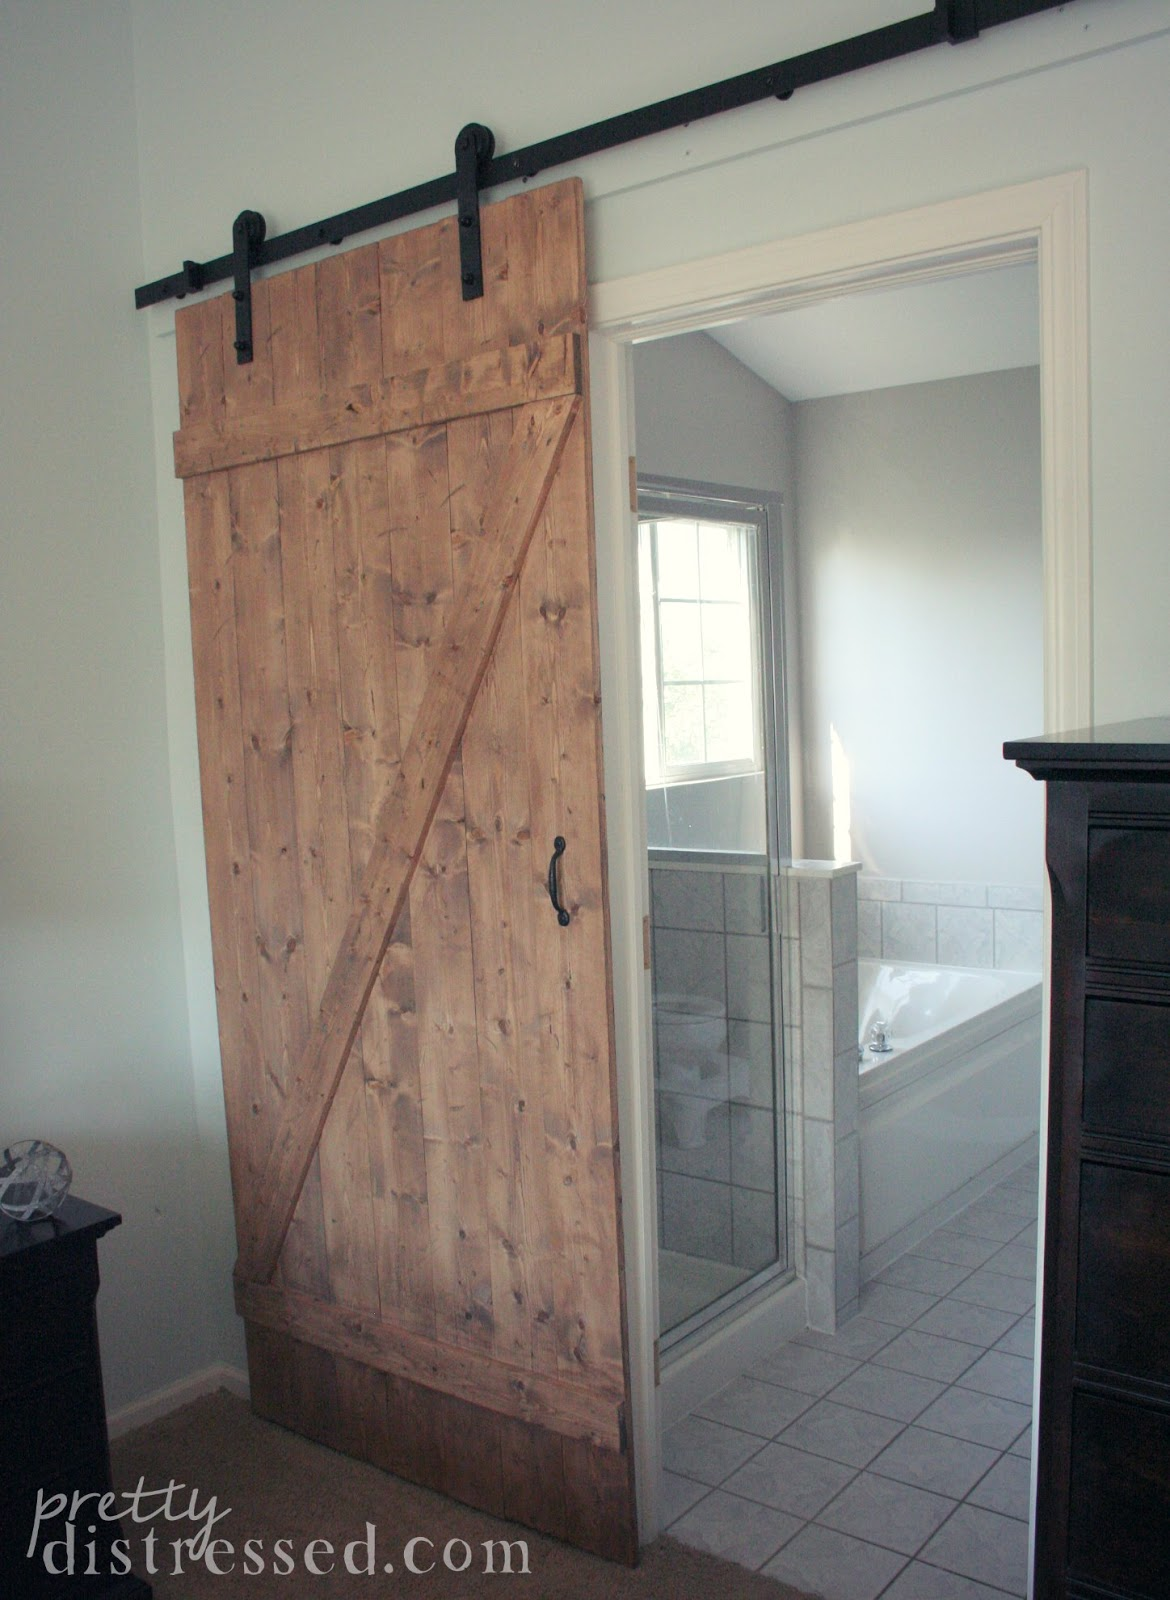 Pretty distressed diy distressed sliding barn door for Sliding entry doors